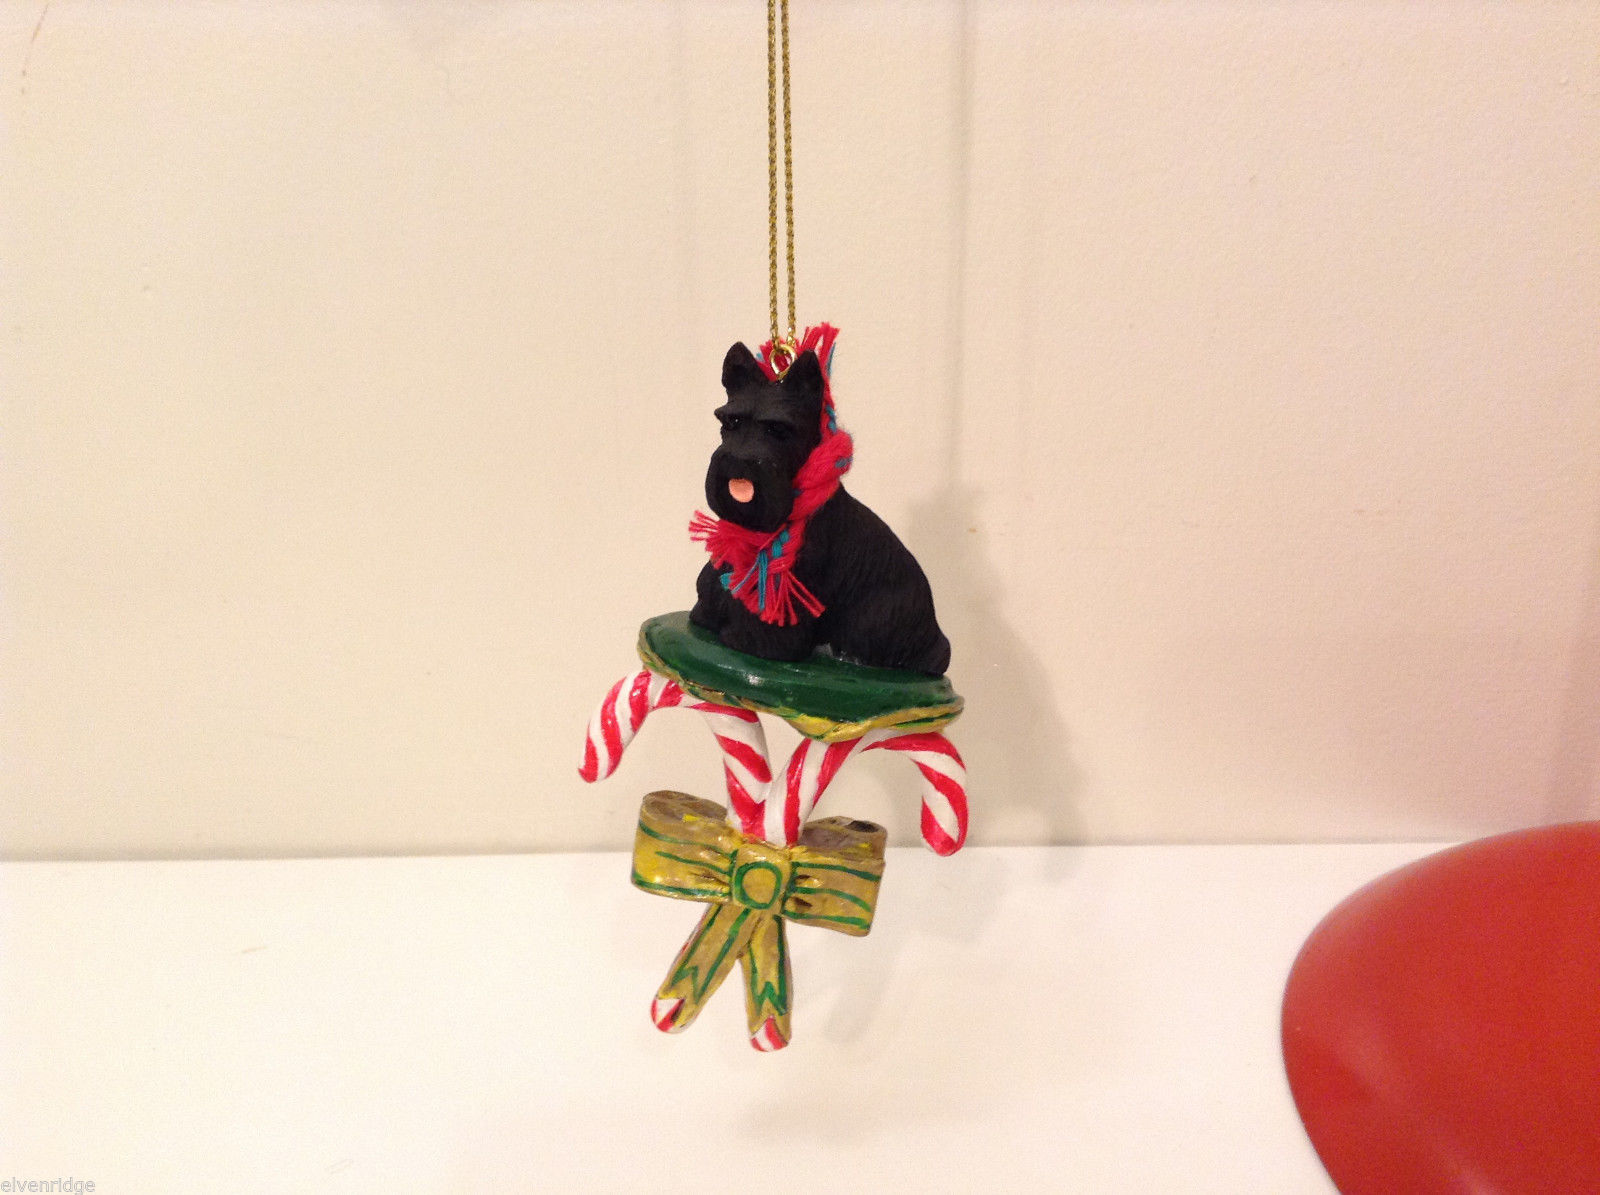 Scottish Terrier Dog Candy Cane Ornament with Red Green Removable Scarf